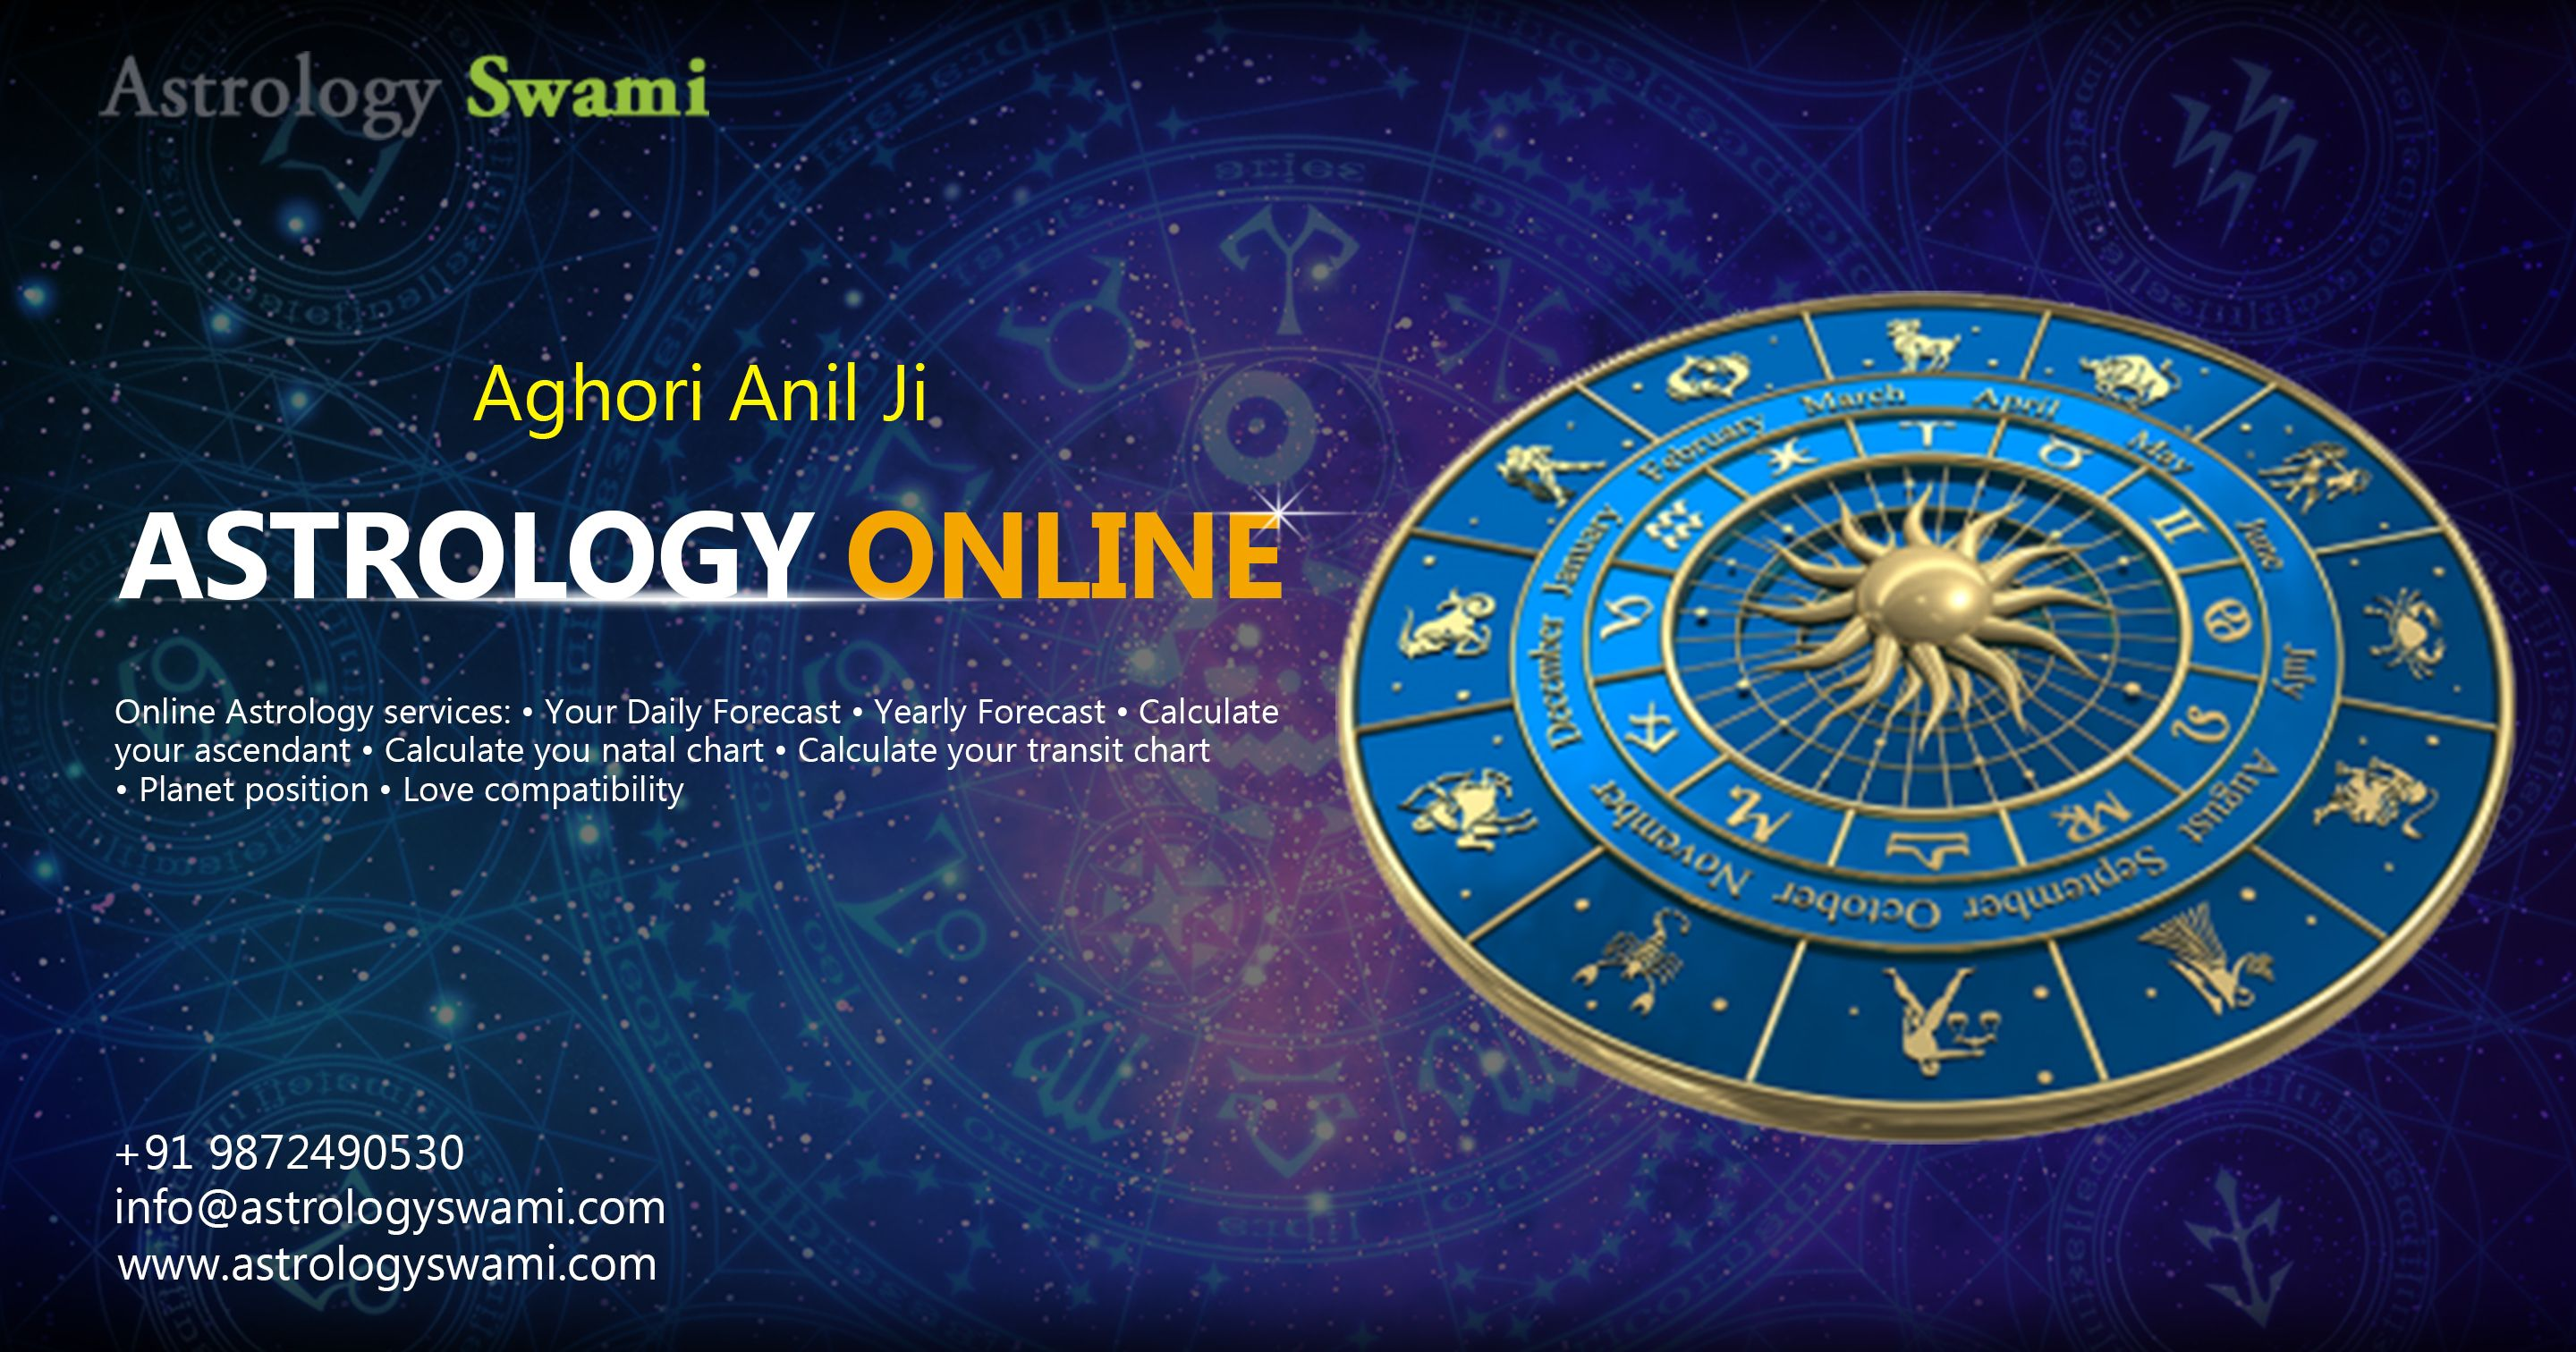 Astrology swami is most popular astrologer in the world